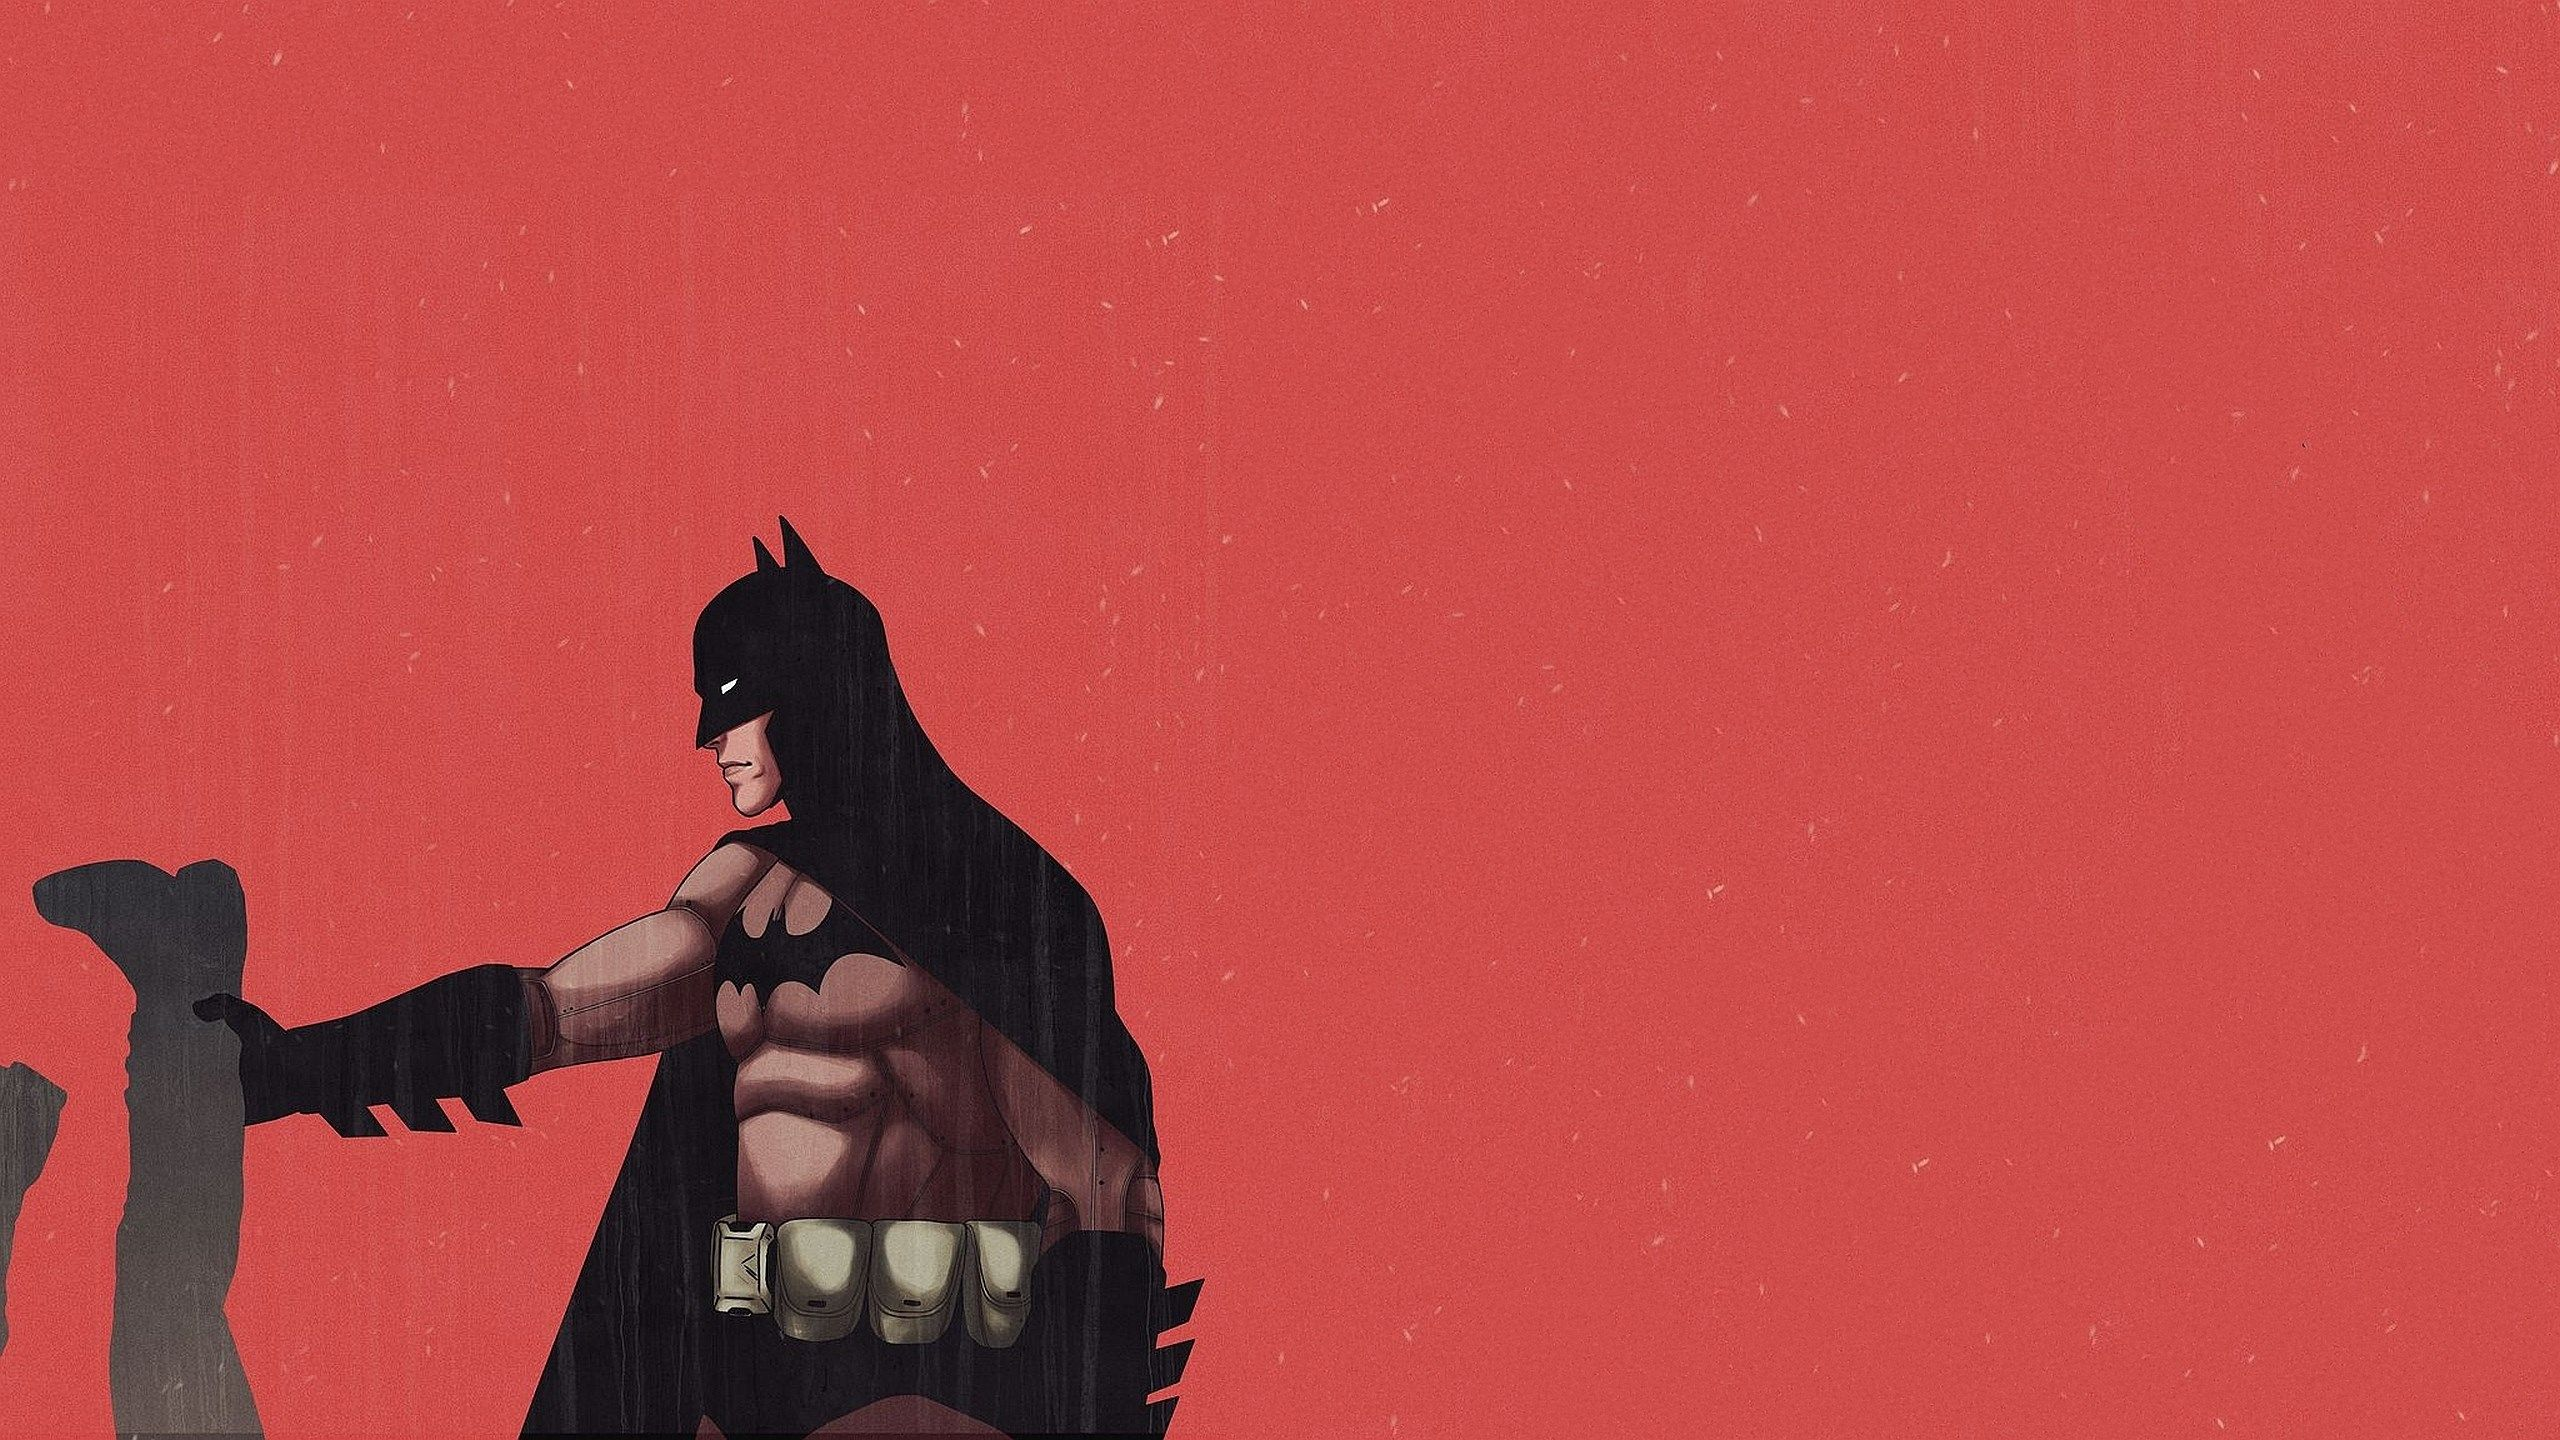 batman pictures to download, 790 kB - Reilly Nail